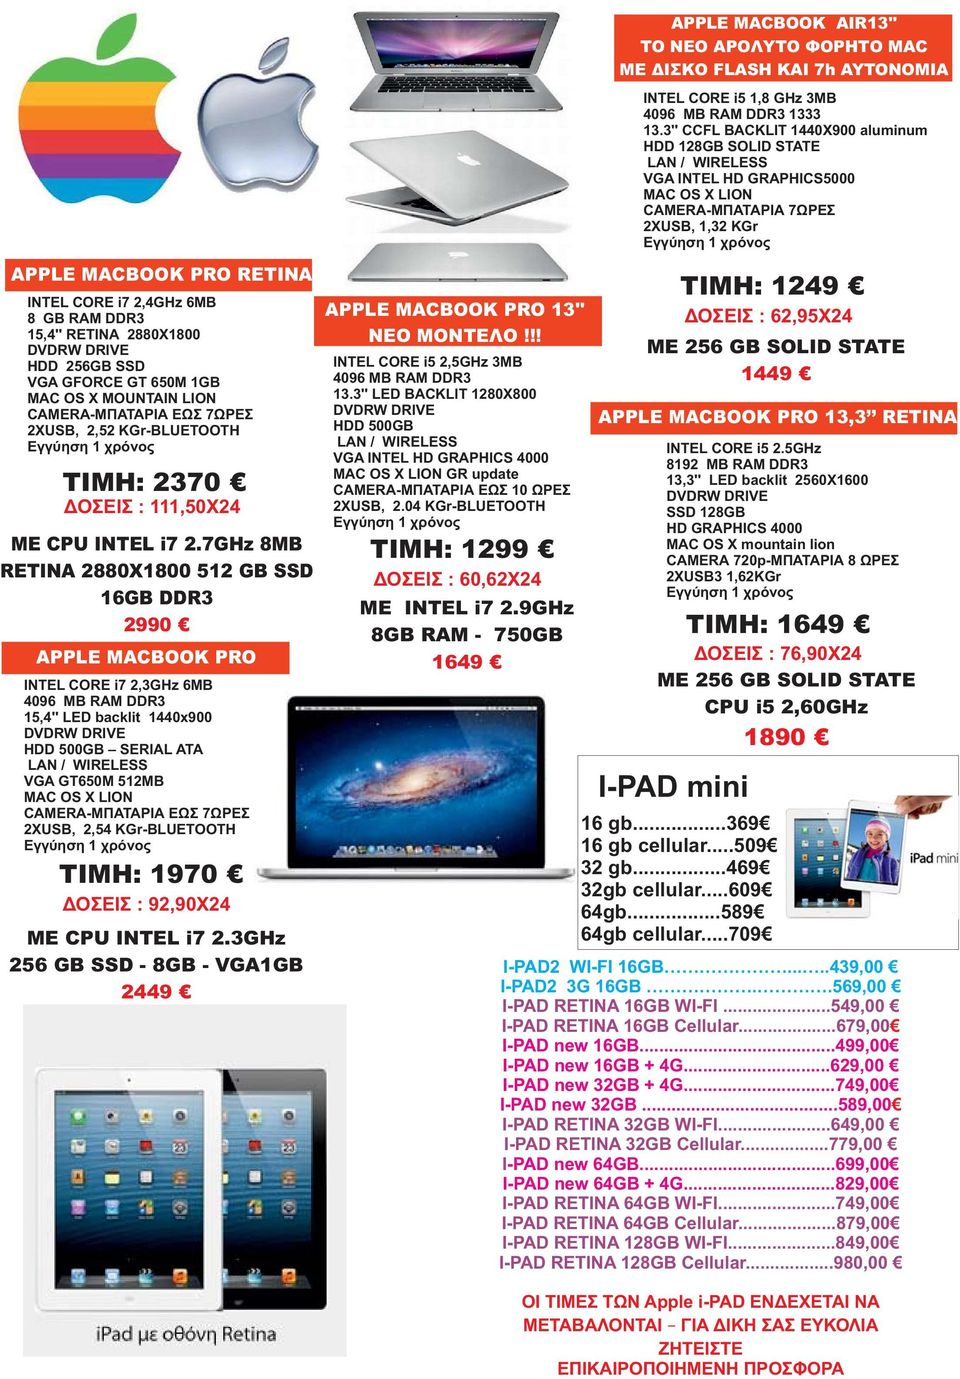 7GHz 8 RETINA 2880X1800 512 SSD 16 DDR3 2990 APPLE MACBOOK PRO INTEL CORE i7 2, 3GHz 6 15,4'' LED backlit 1440x900 DRIVE HDD SERIAL ATA LAN / WIRELESS VGA GT650M 512 MAC OS X LION CAMERA-ΜΠΑΤΑΡΙΑ ΕΩΣ